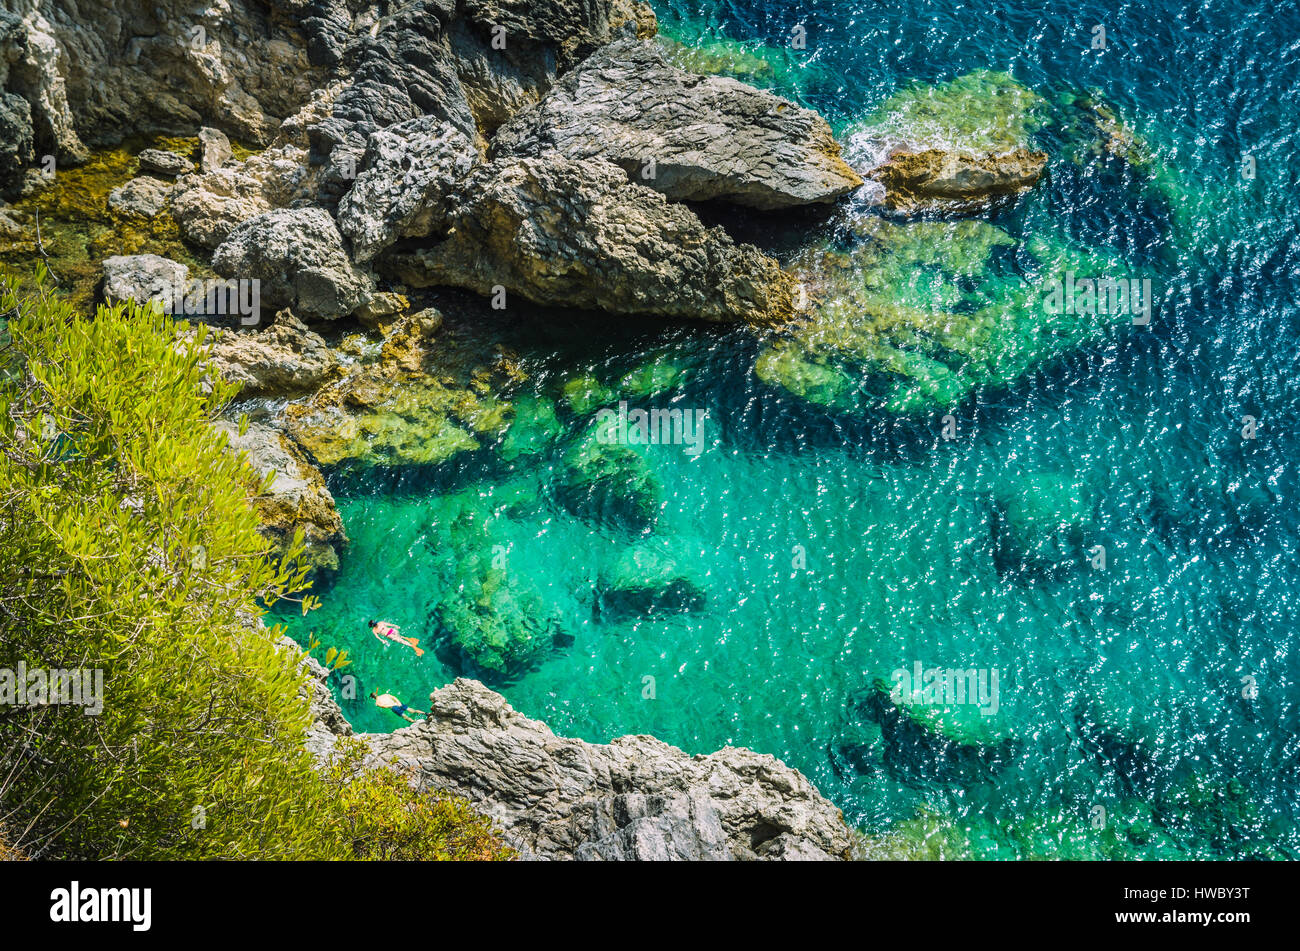 Tourists shorkling between Rocks in Azure Bay of Beautiful Paleokastritsa in Corfu Island, Greece Stock Photo